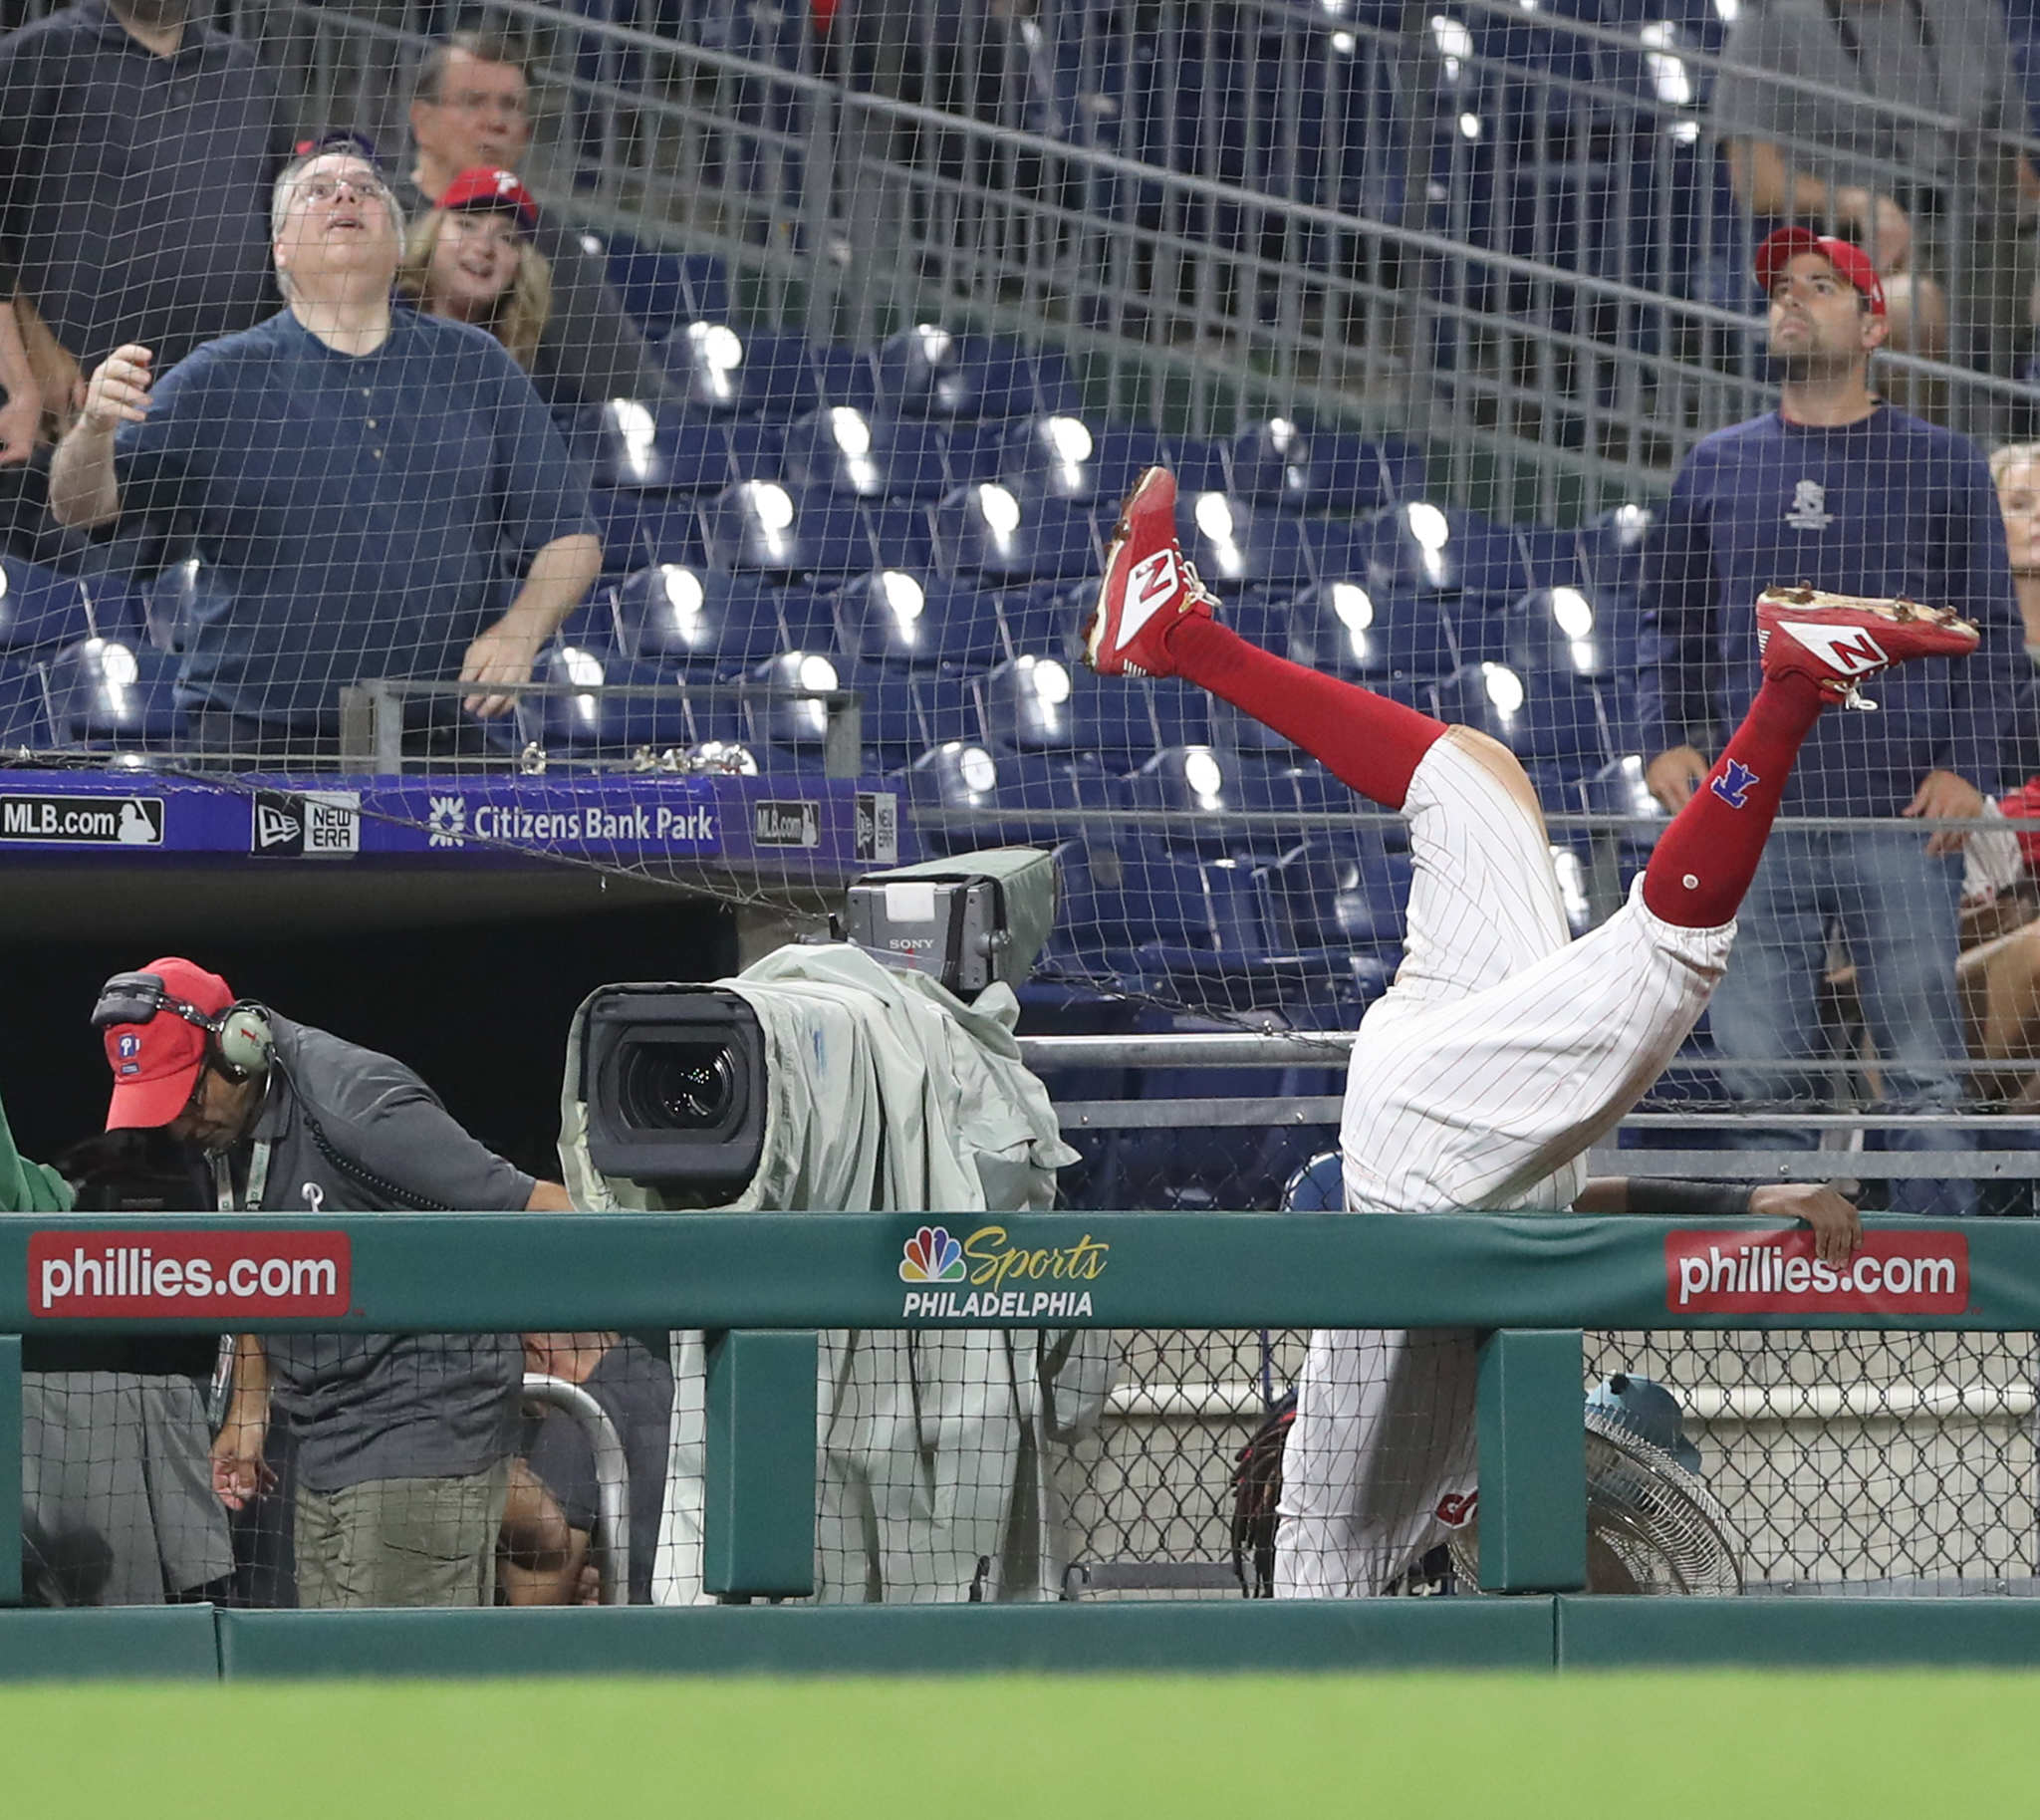 Maikel Franco, right, of the Phillies flips over a railing as he goes after a foul ball hit by Adam Eaton of the Nationals in the 8th inning at Citizens Bank Park on Sept. 11, 2018.